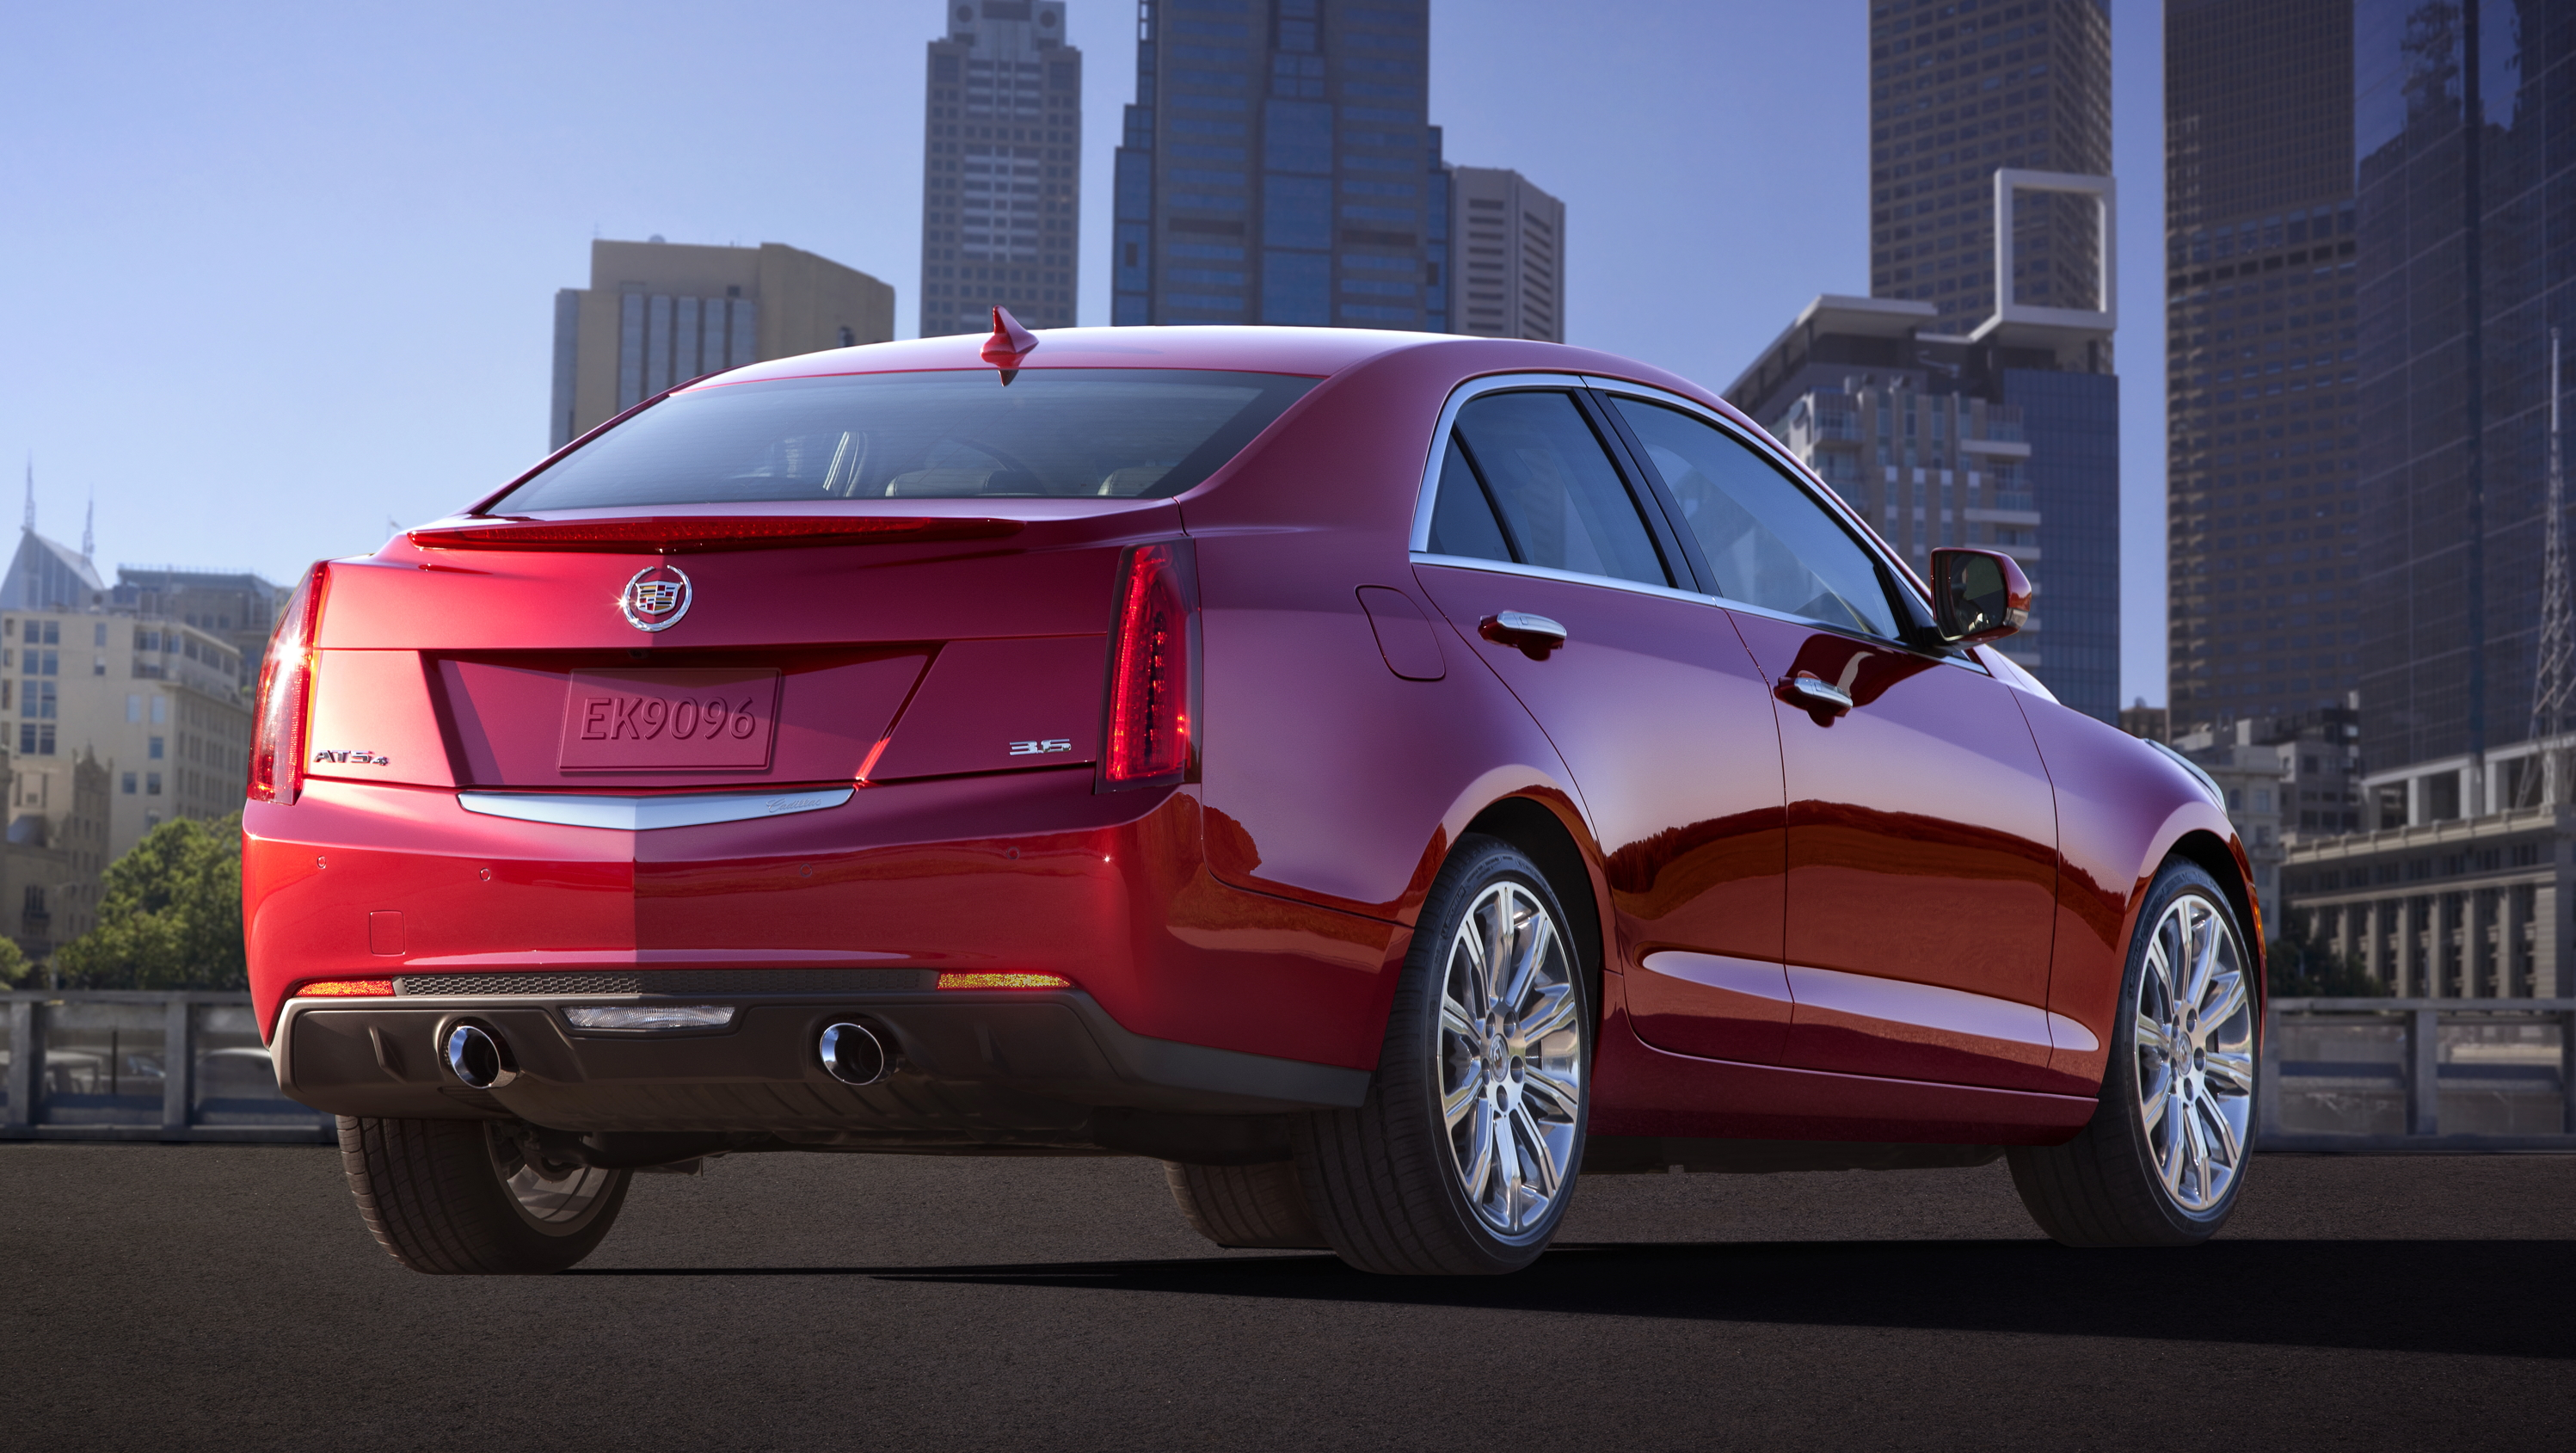 Detroit 2012: GM Announces 2013 Cadillac ATS – Road Reality